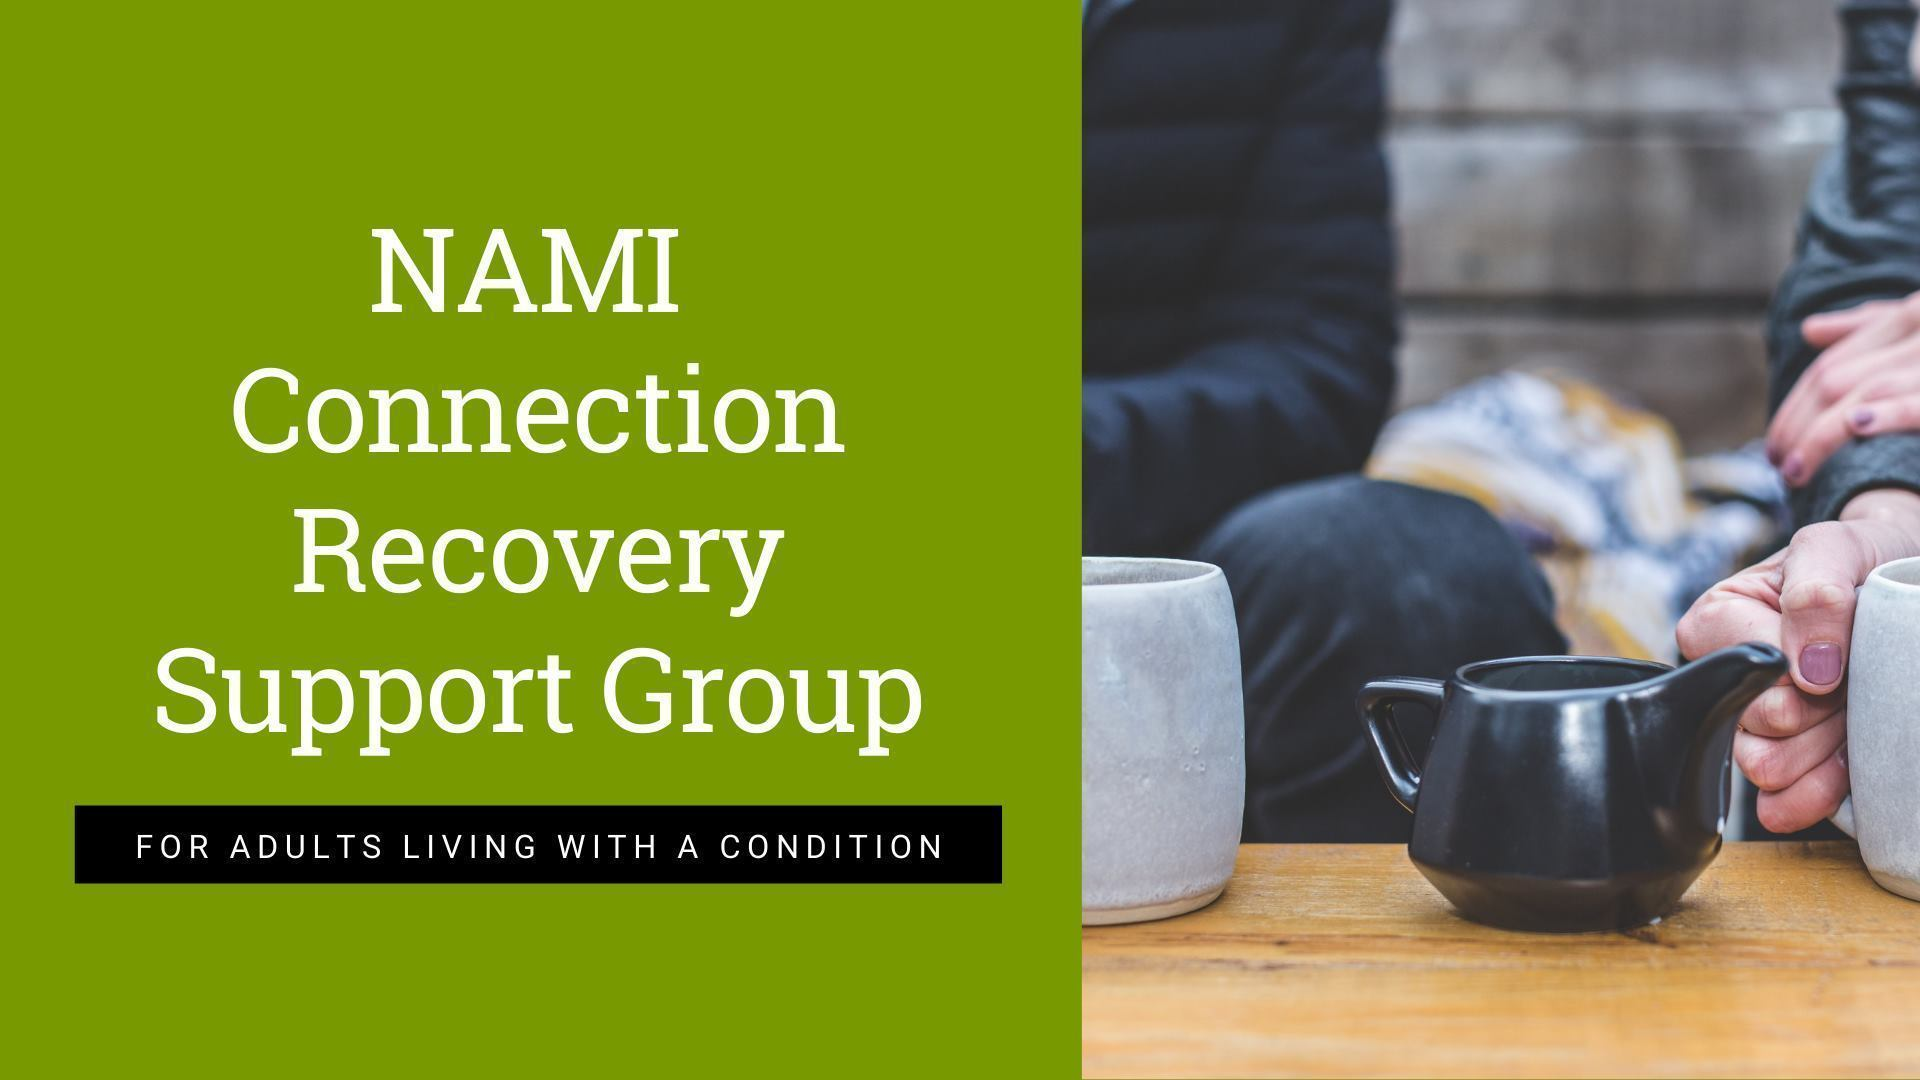 NAMI support group for adults living with a mental health condition. No cost to attend. Butterworth Center, Craft Room.